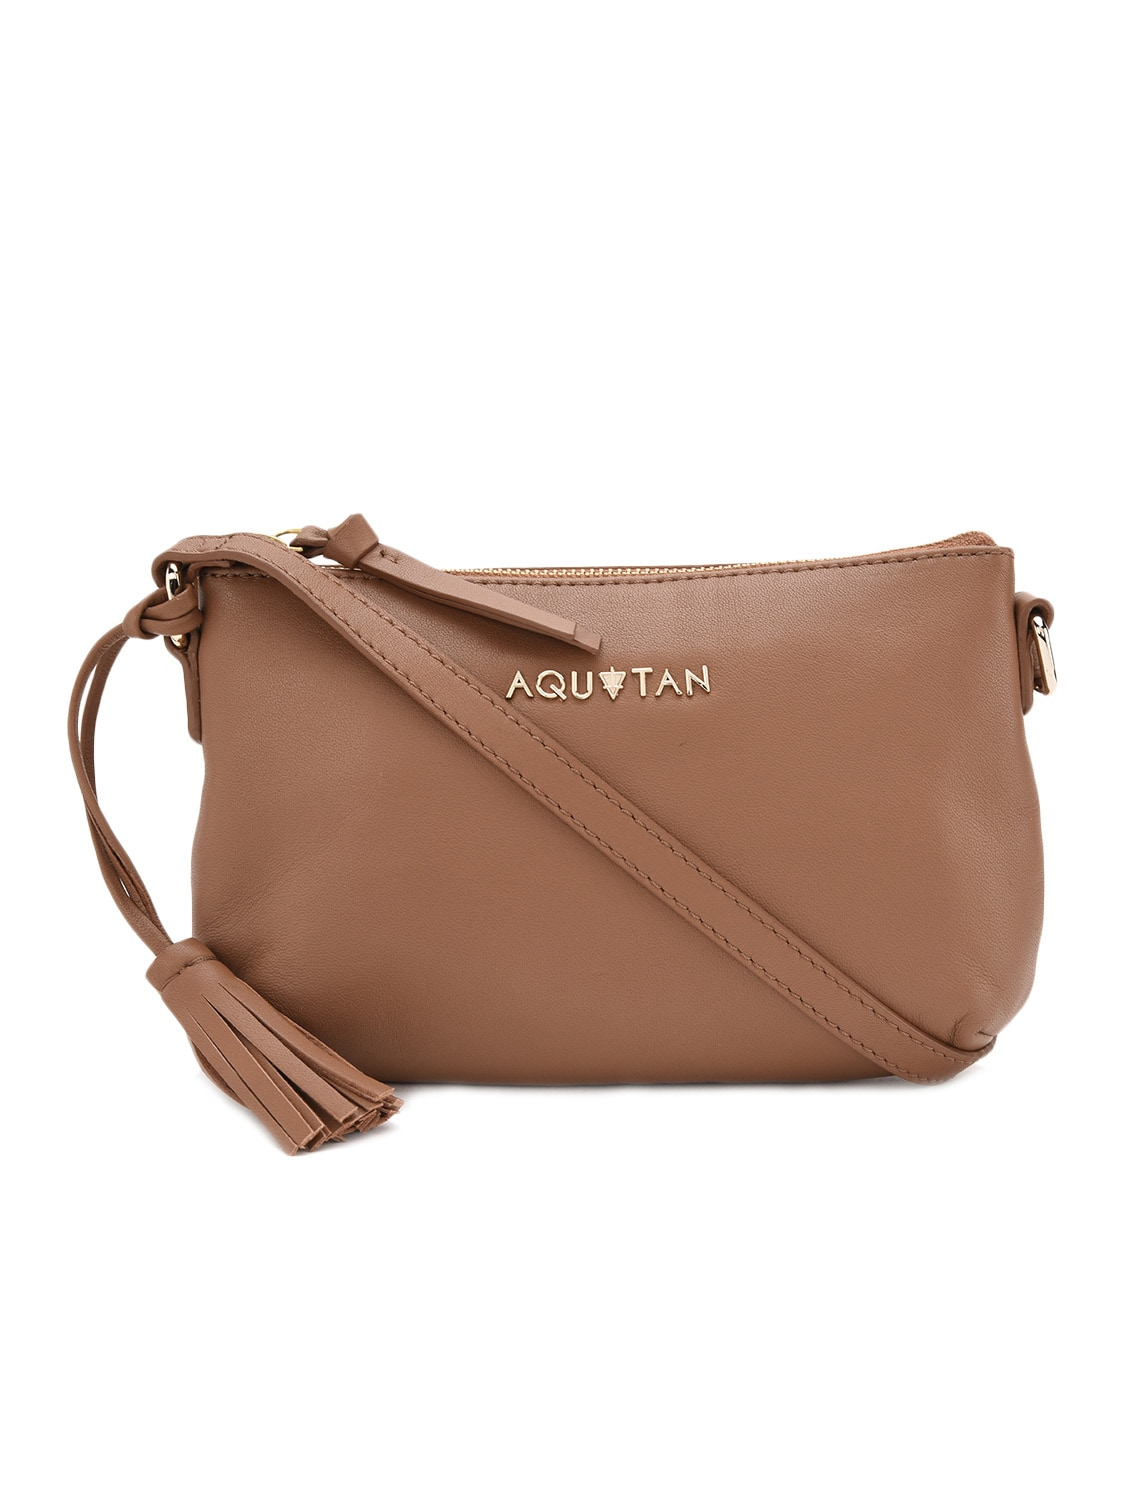 0d20cefecb Buy Textured Brown Leather Sling Bag for Women from Aquatan for ₹1798 at  47% off